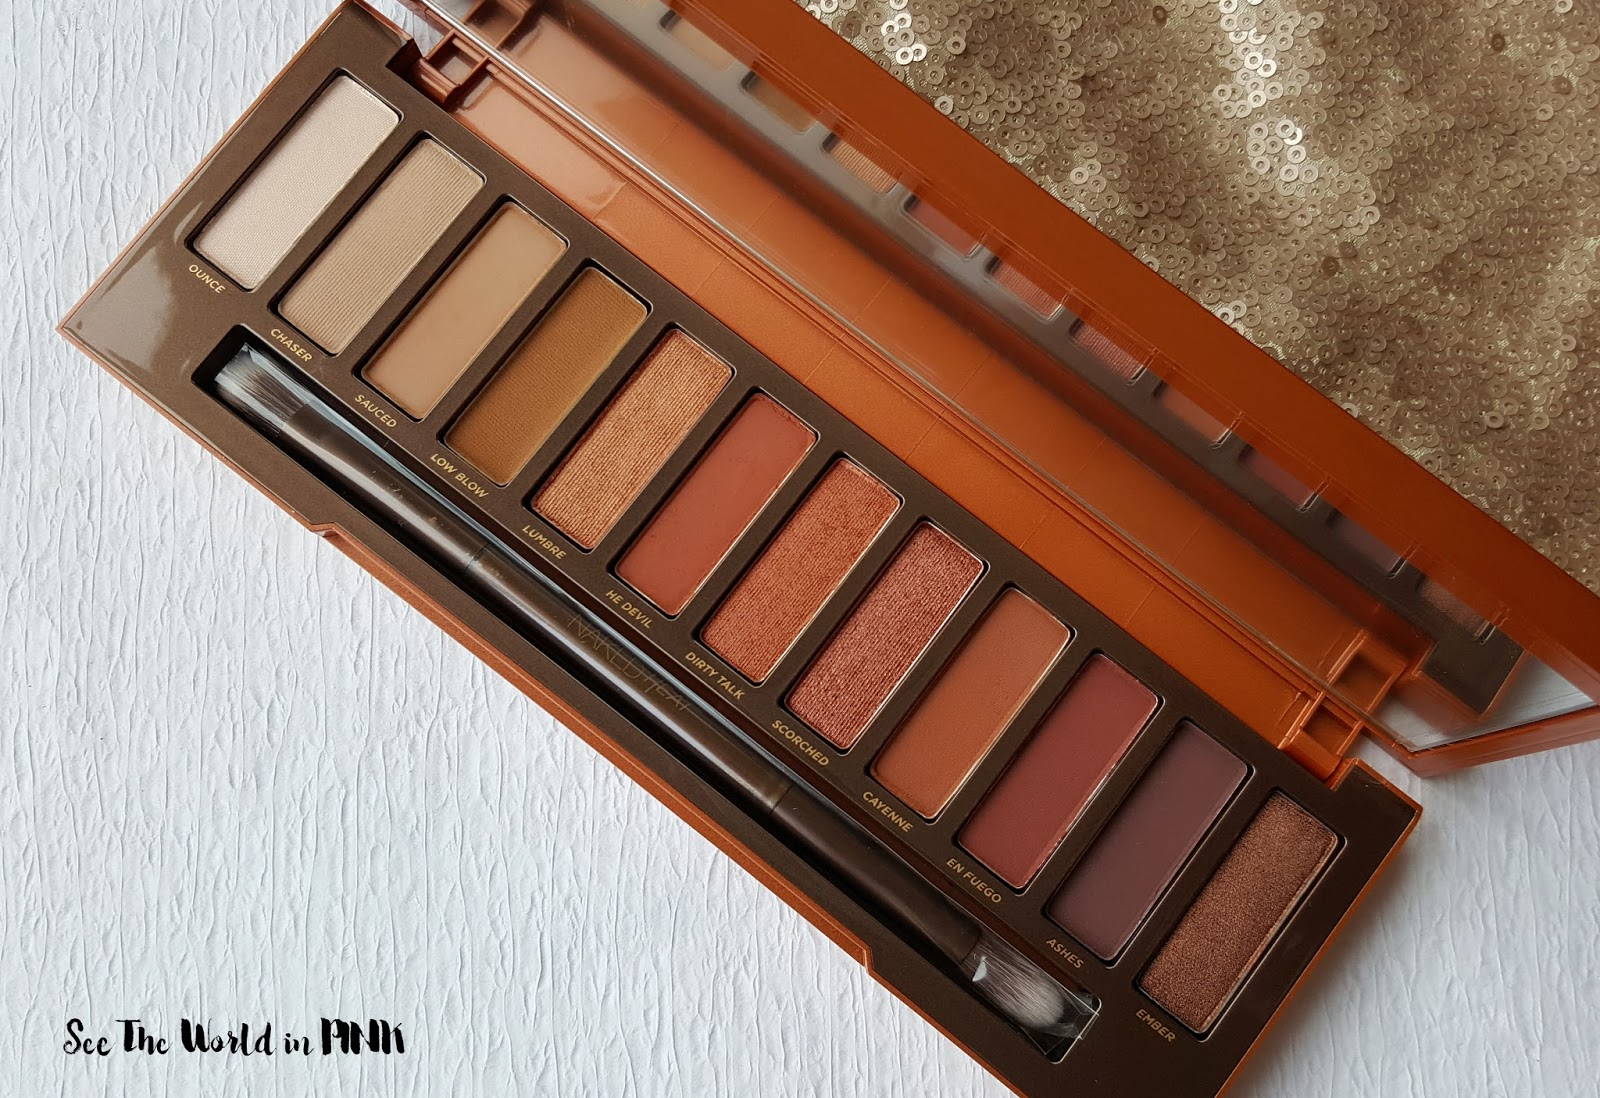 Urban Decay Naked Heat Palette - Swatches, Makeup Look, and Review!